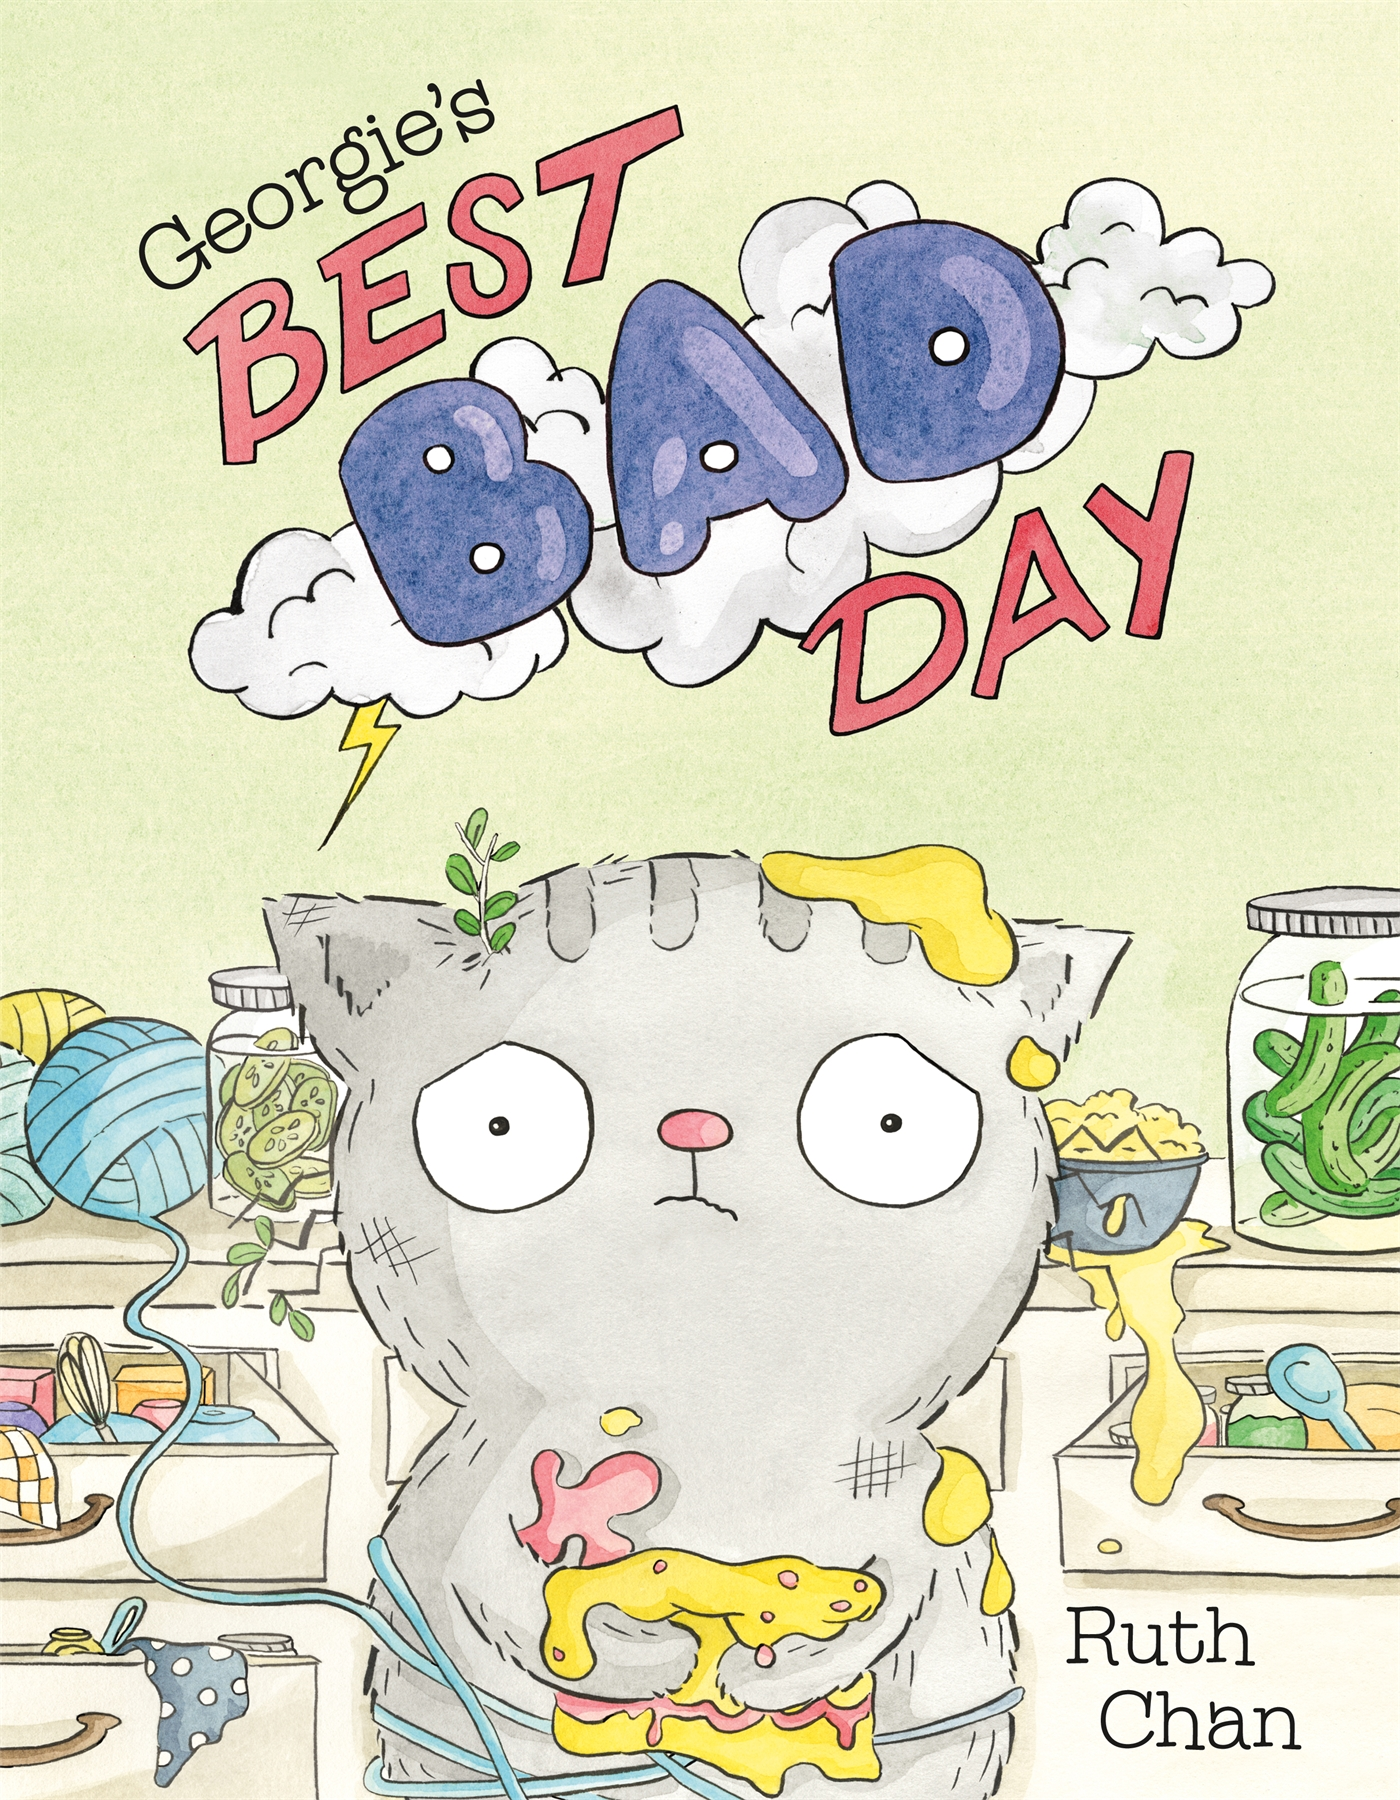 Sunday Story Time with Ruth Chan (Author & Illustrator of Georgie's Best Bad Day)